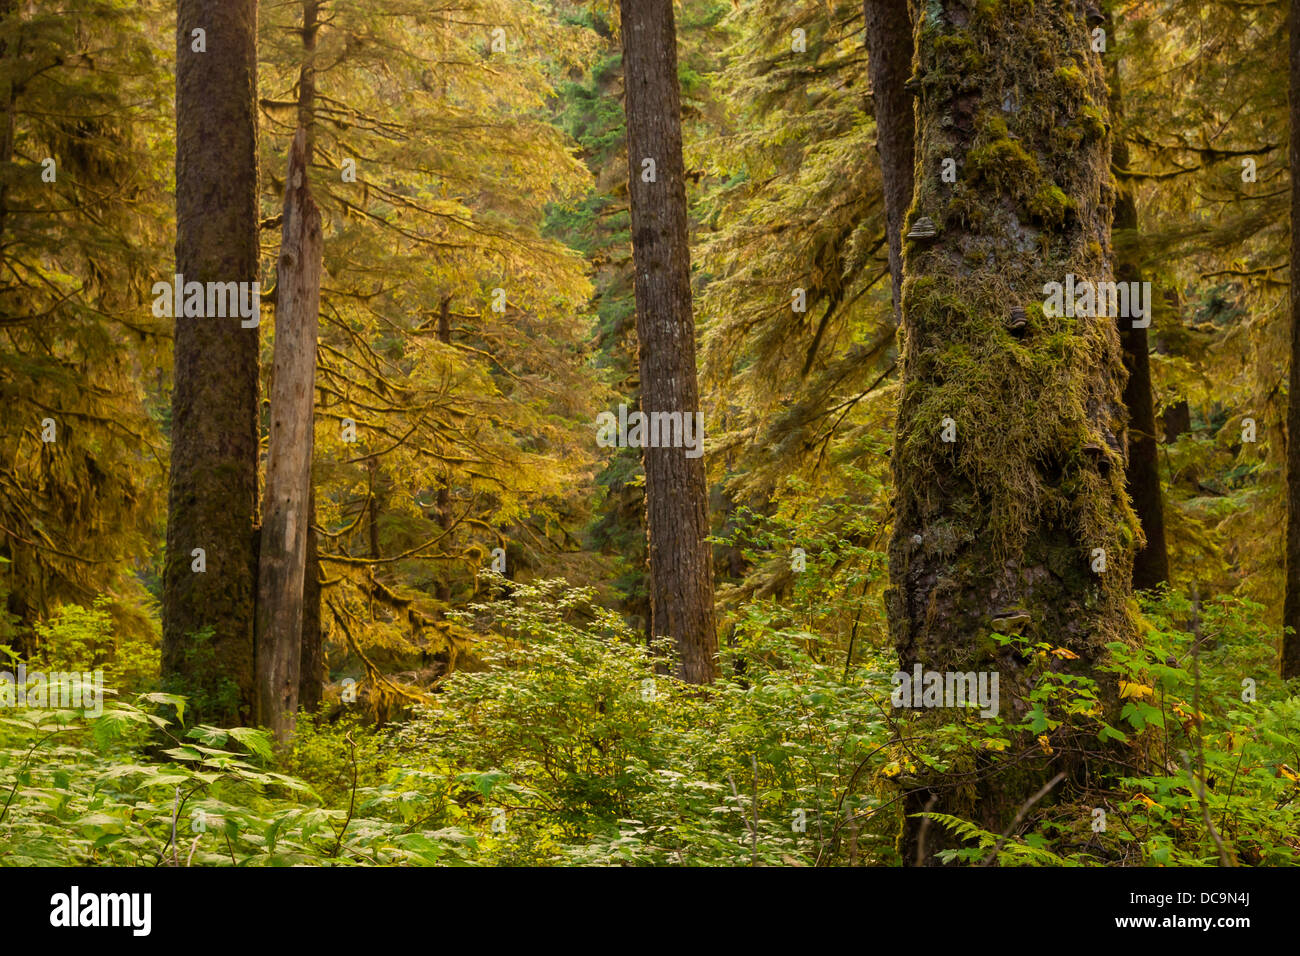 USA, Alaska, Tongass National Forest. Forest scenic on Admiralty Island. - Stock Image